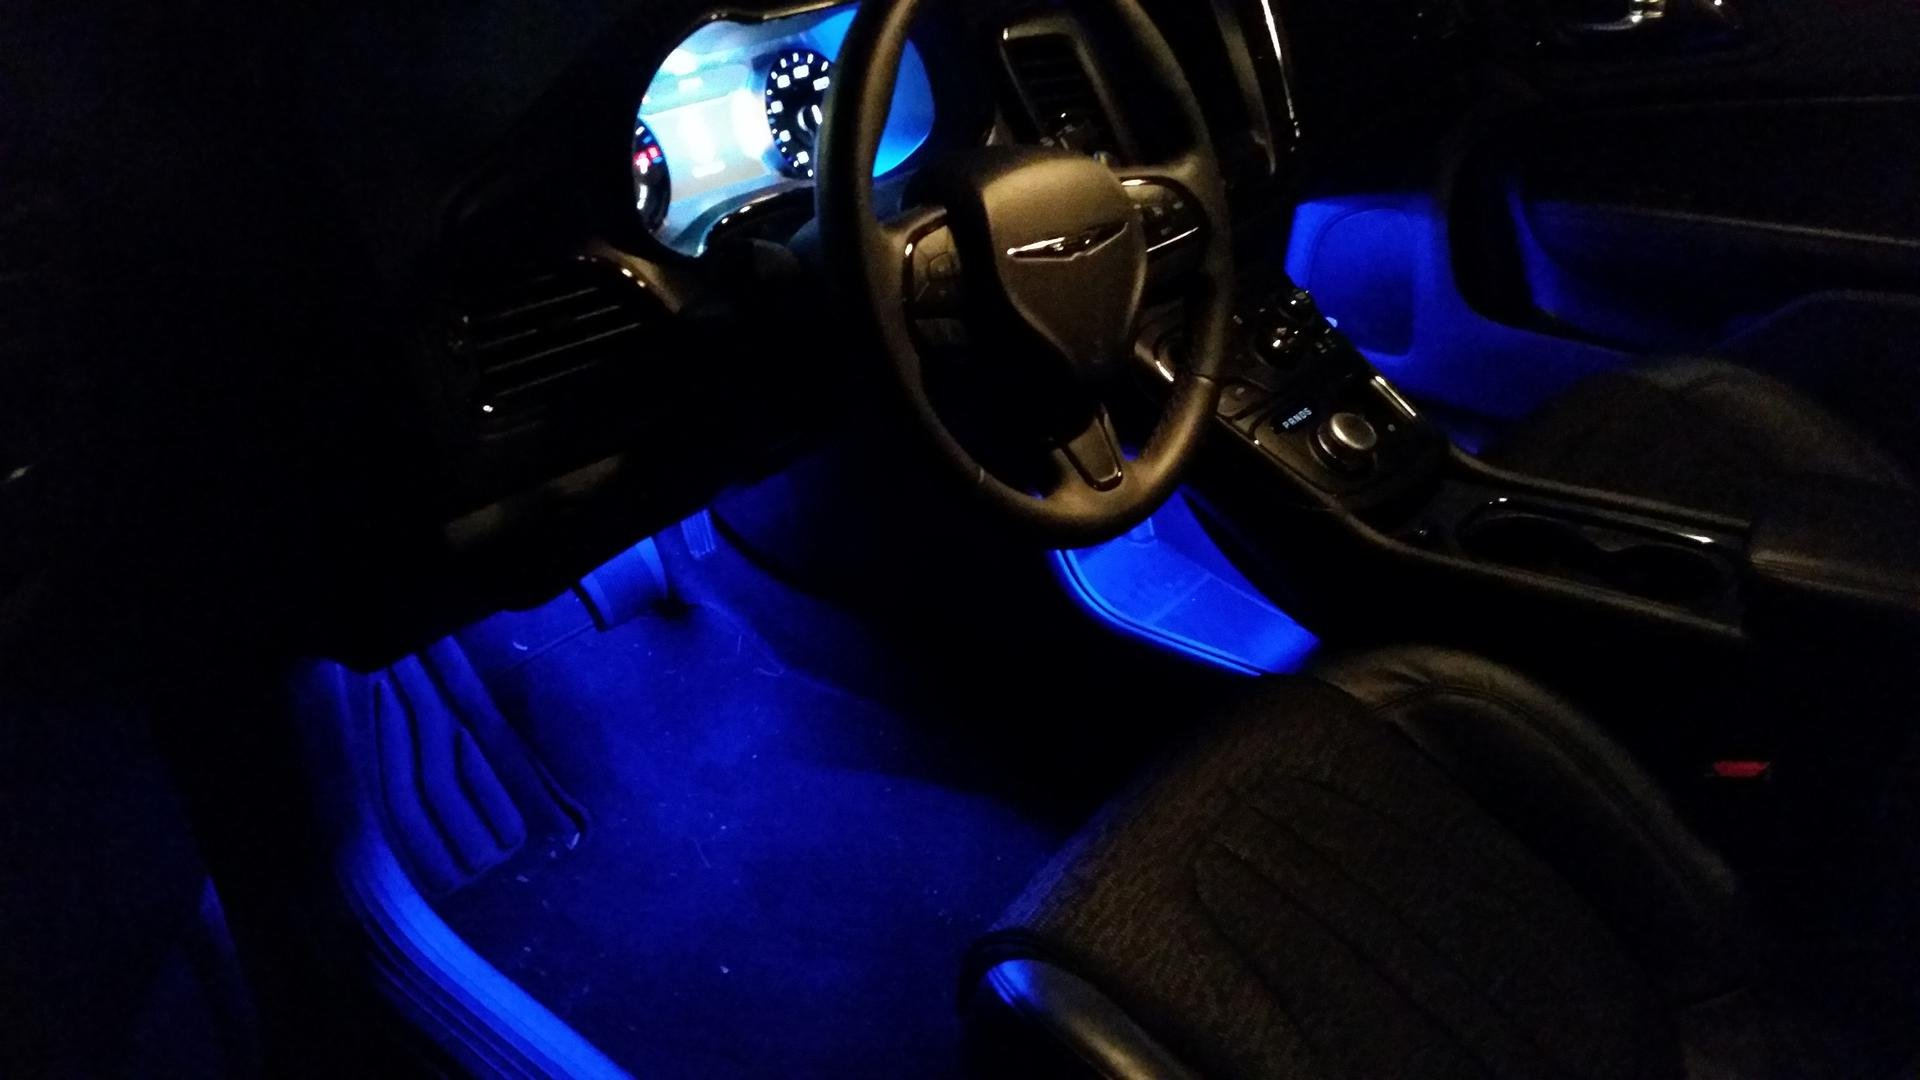 Blue Led Interior Lights With Pics